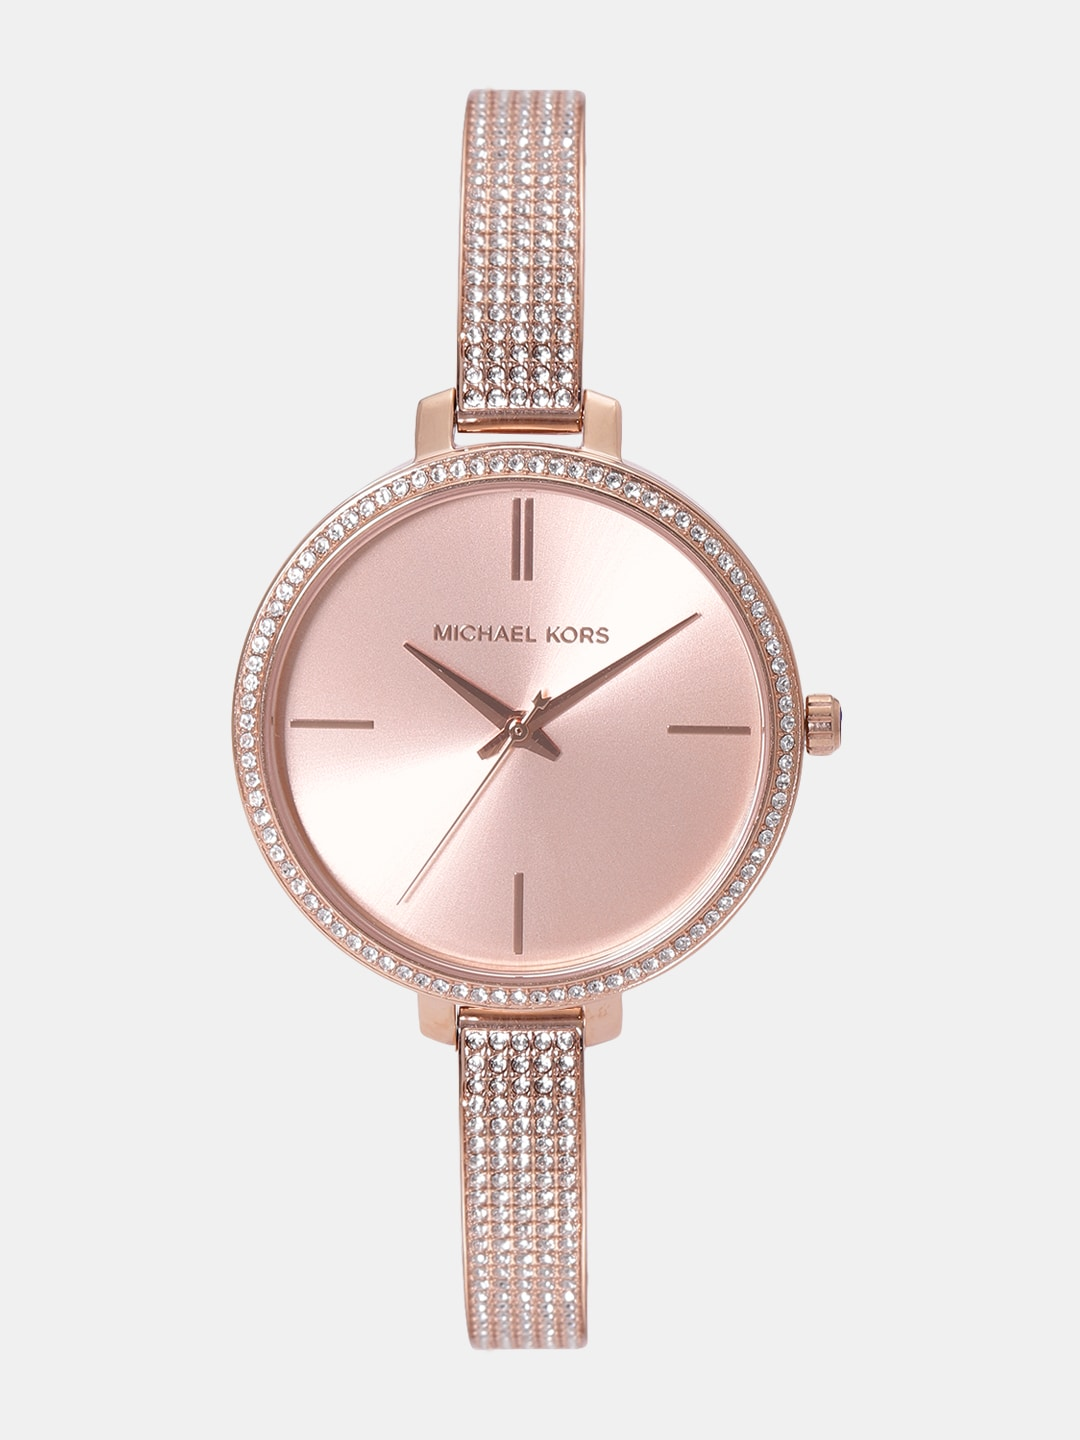 Michael Kors Rose Buy Michael Kors Rose Online In India